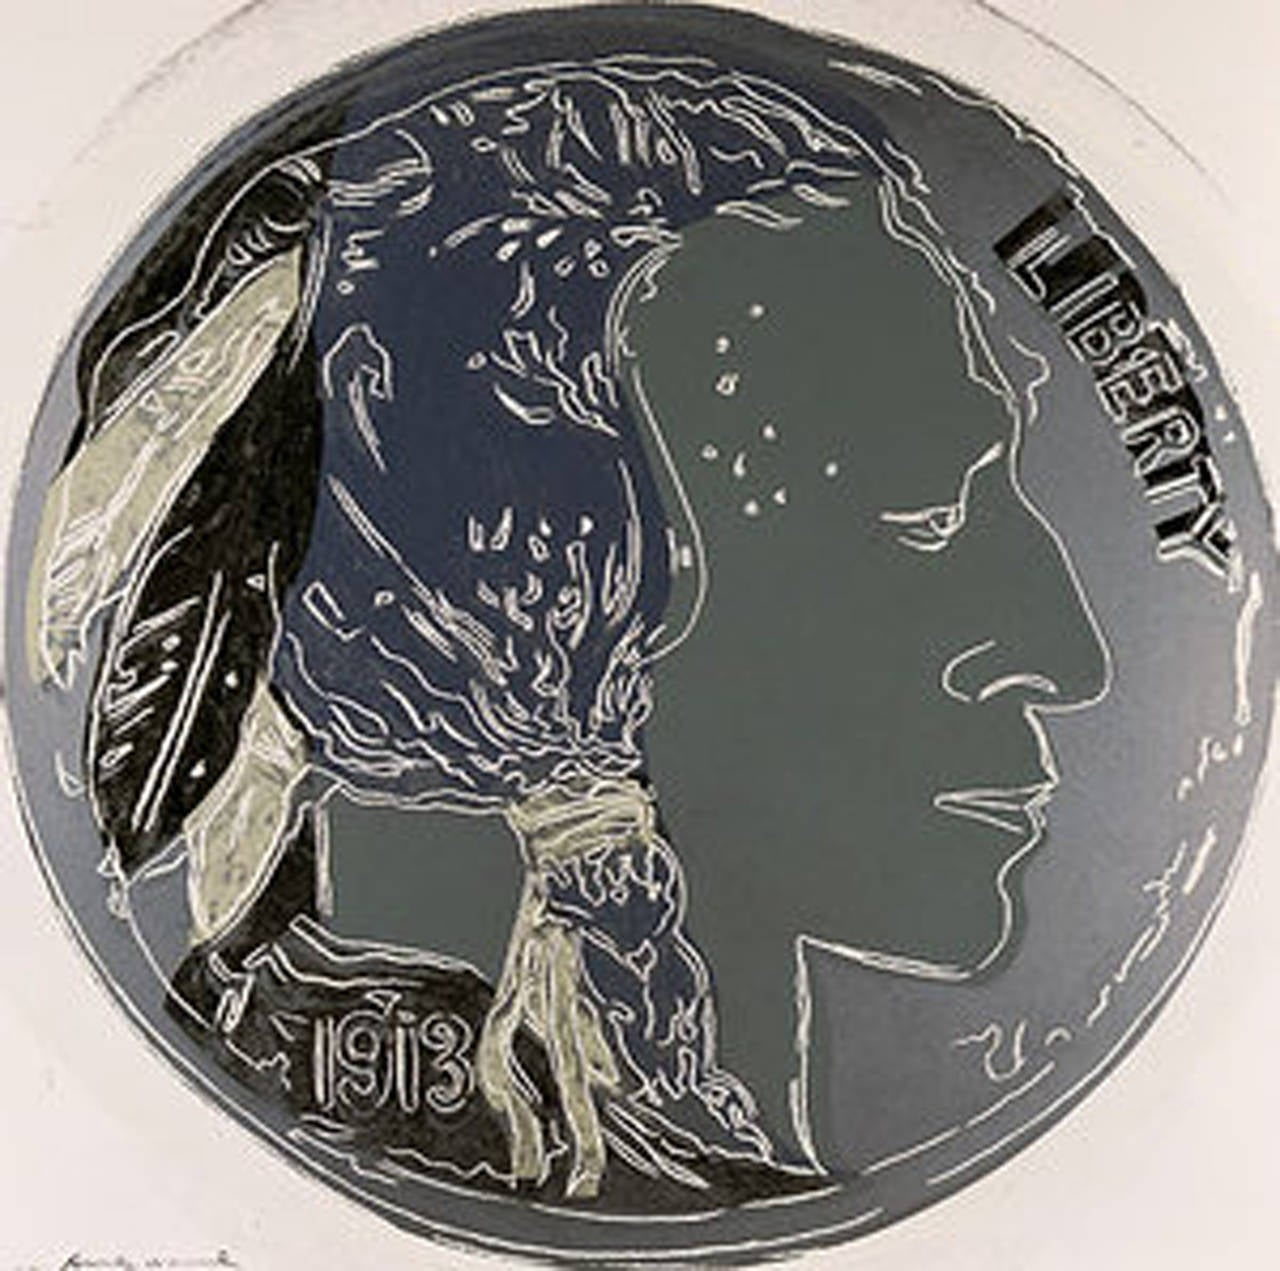 Andy Warhol Figurative Print - Indian Head Nickel, IIB. 385